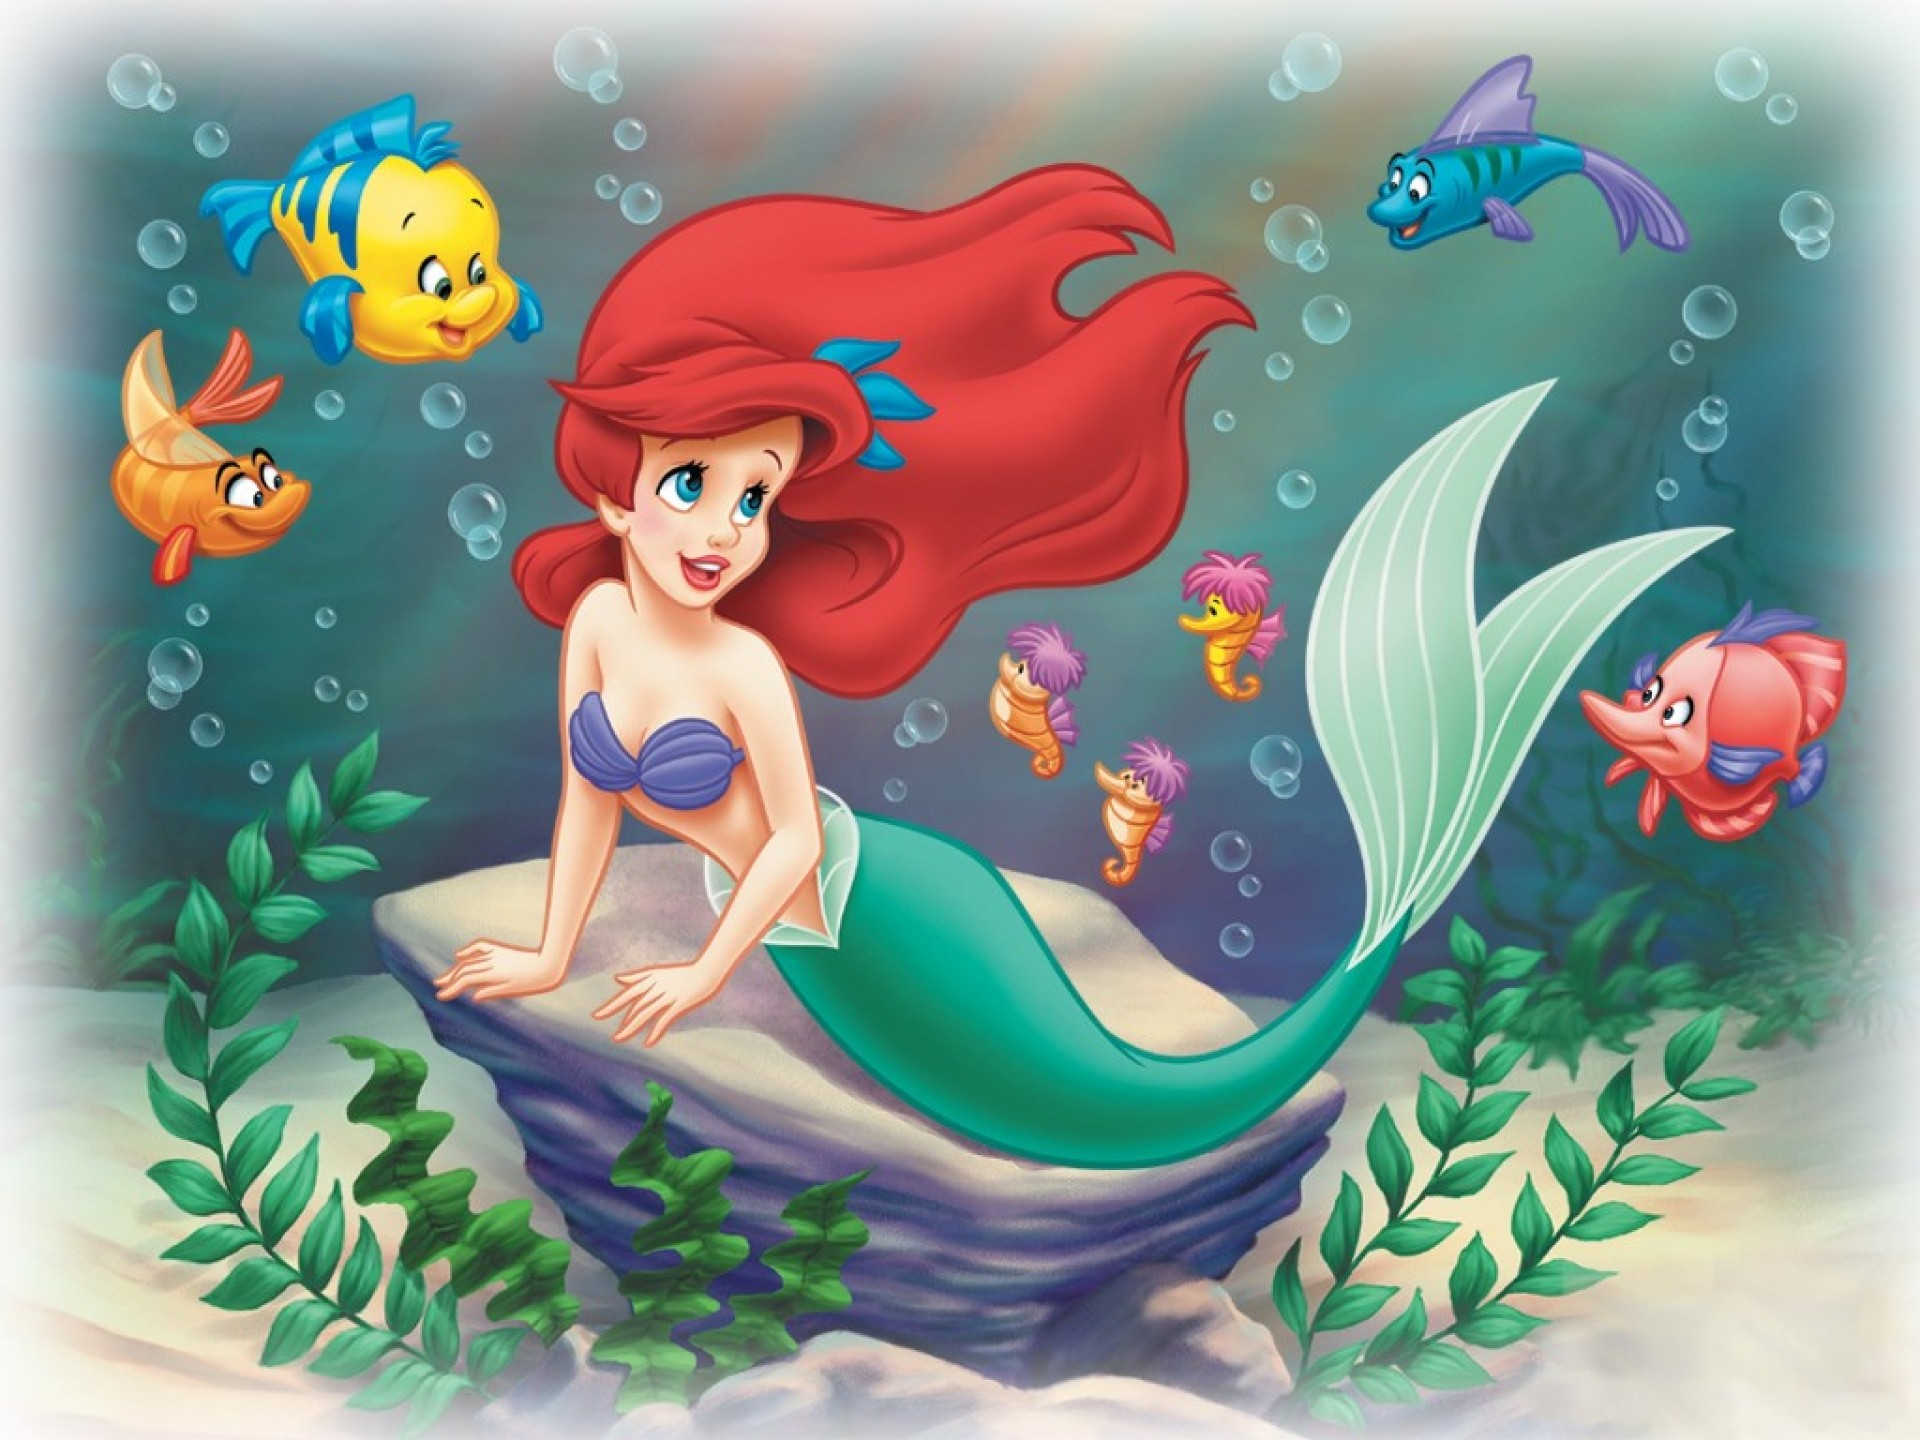 After the huge success Disney had with The Little Mermaid they decided the movie needed a prequel series for TV The Little Mermaid Series debuted on CBS in 1992